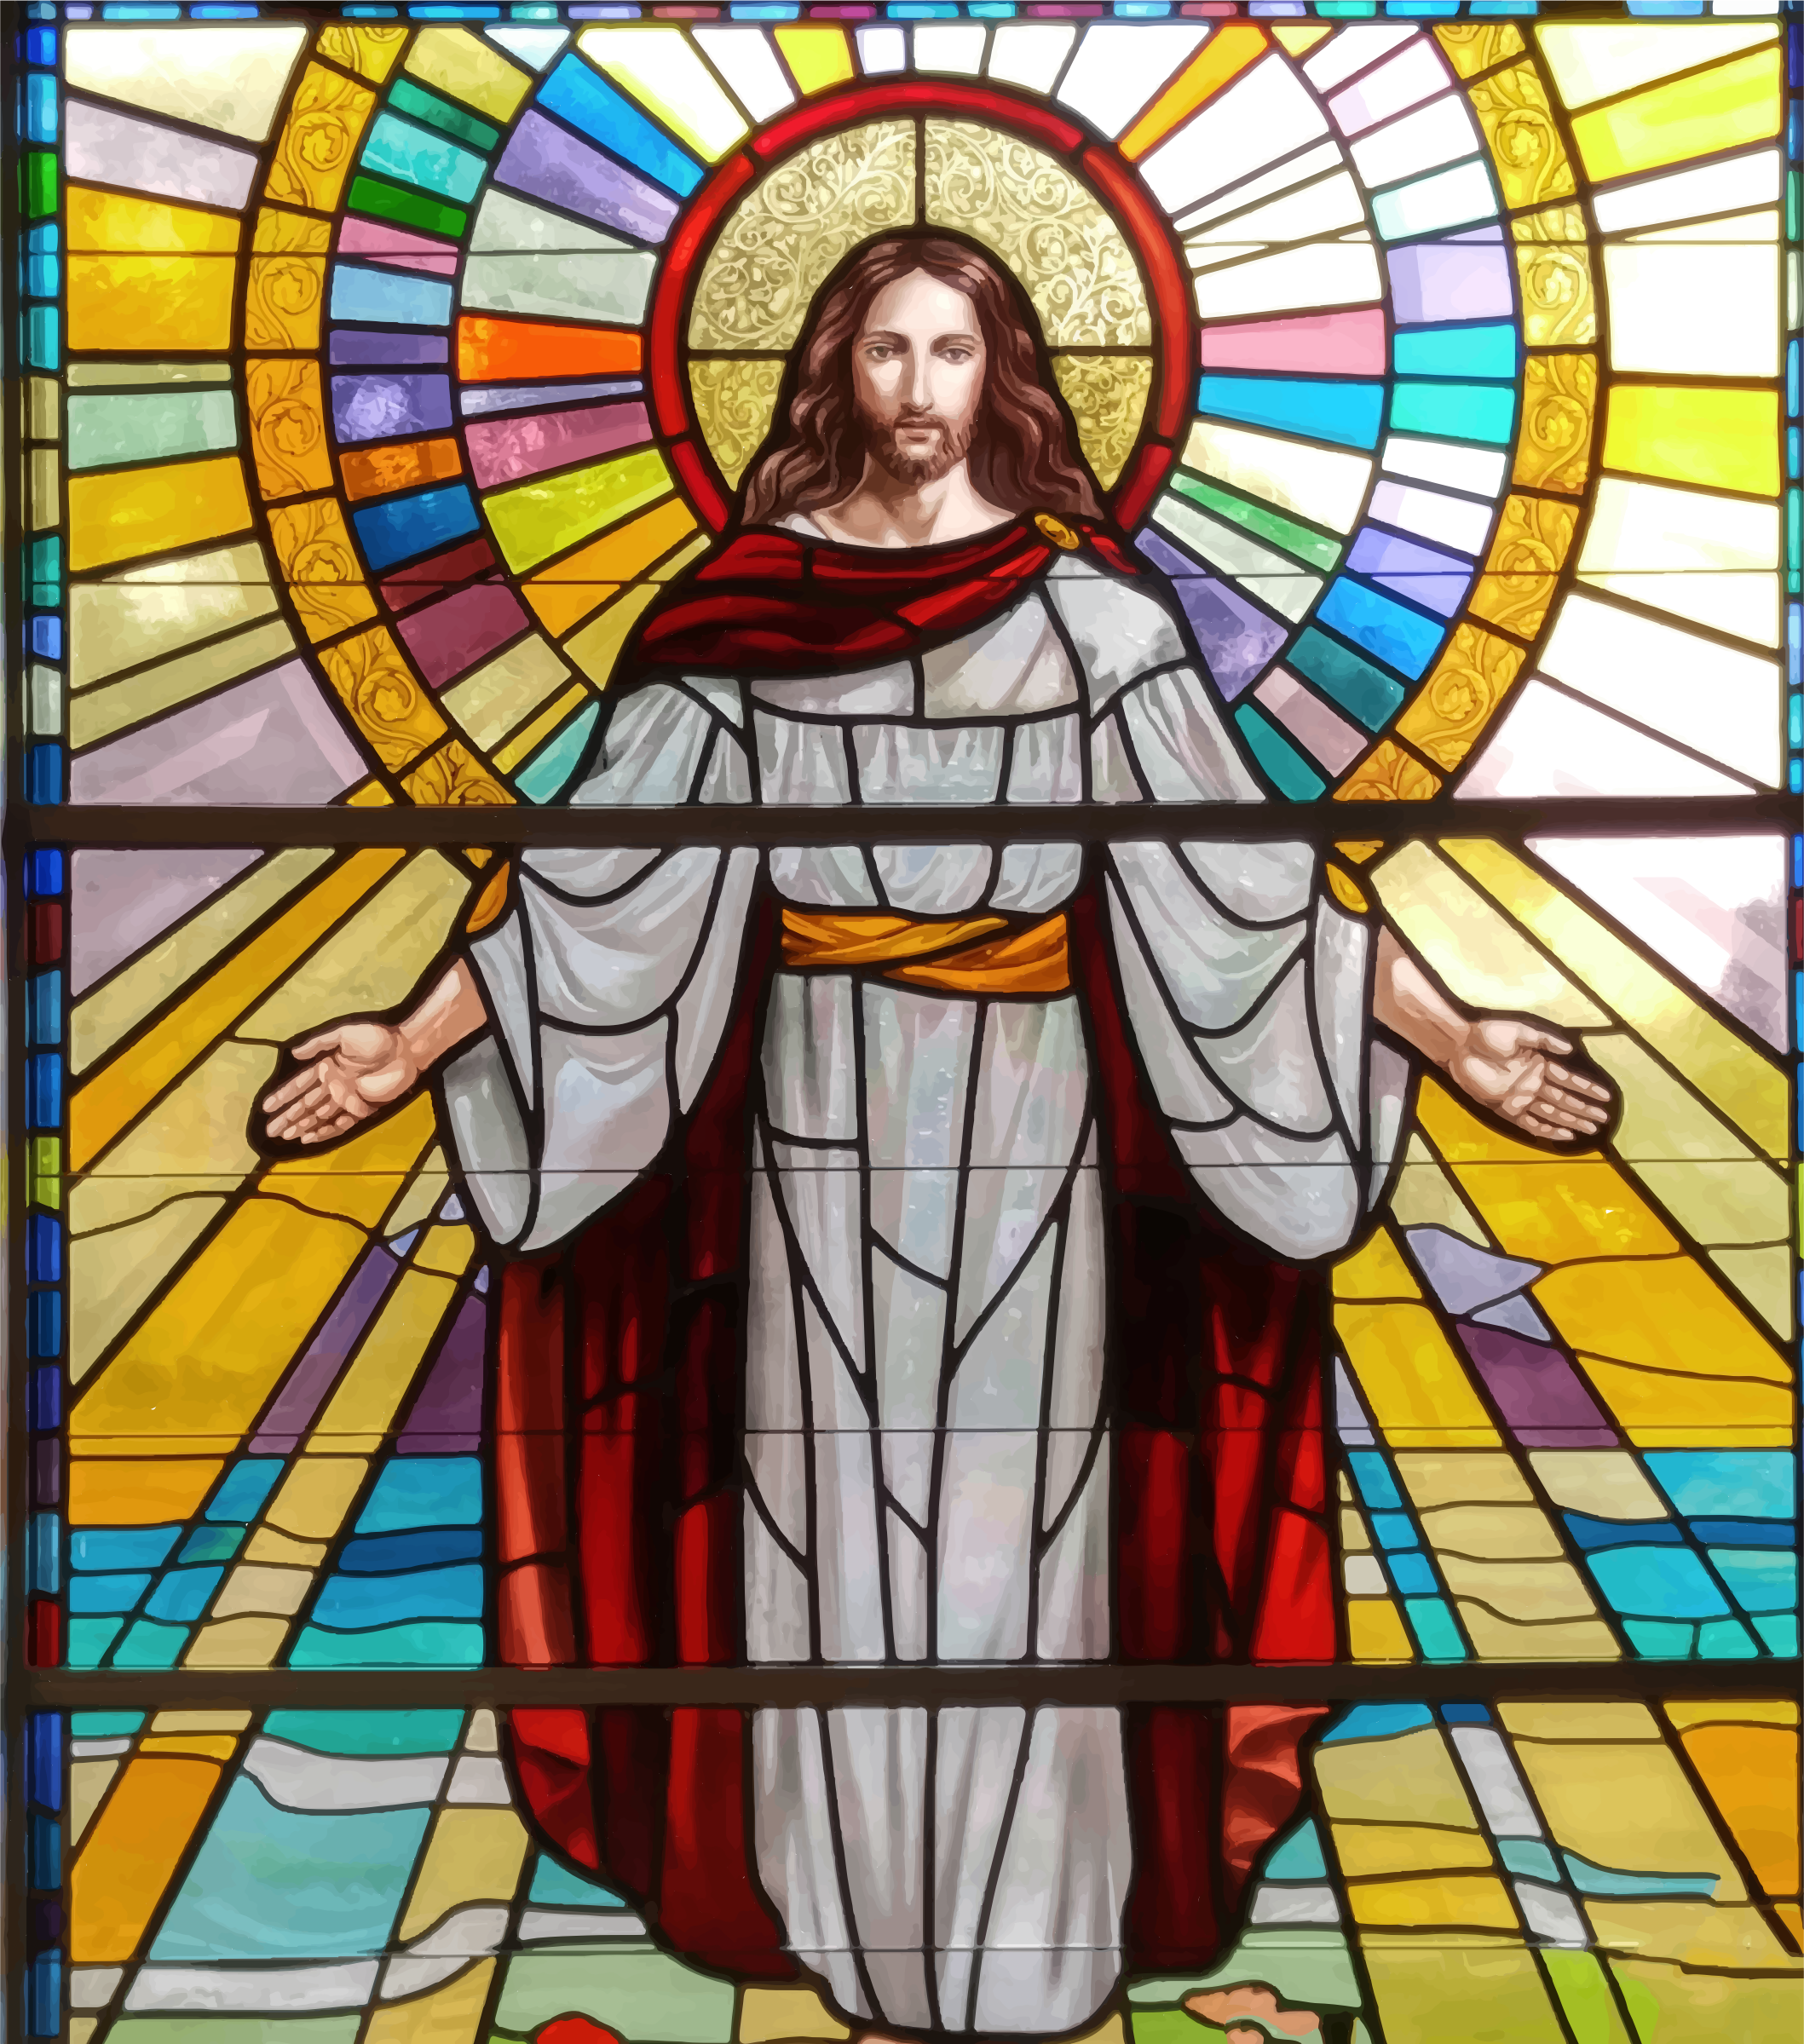 Christian stained glass clipart graphic royalty free download stained glass images of jesus | Log in | Sign Up Upload Clipart ... graphic royalty free download